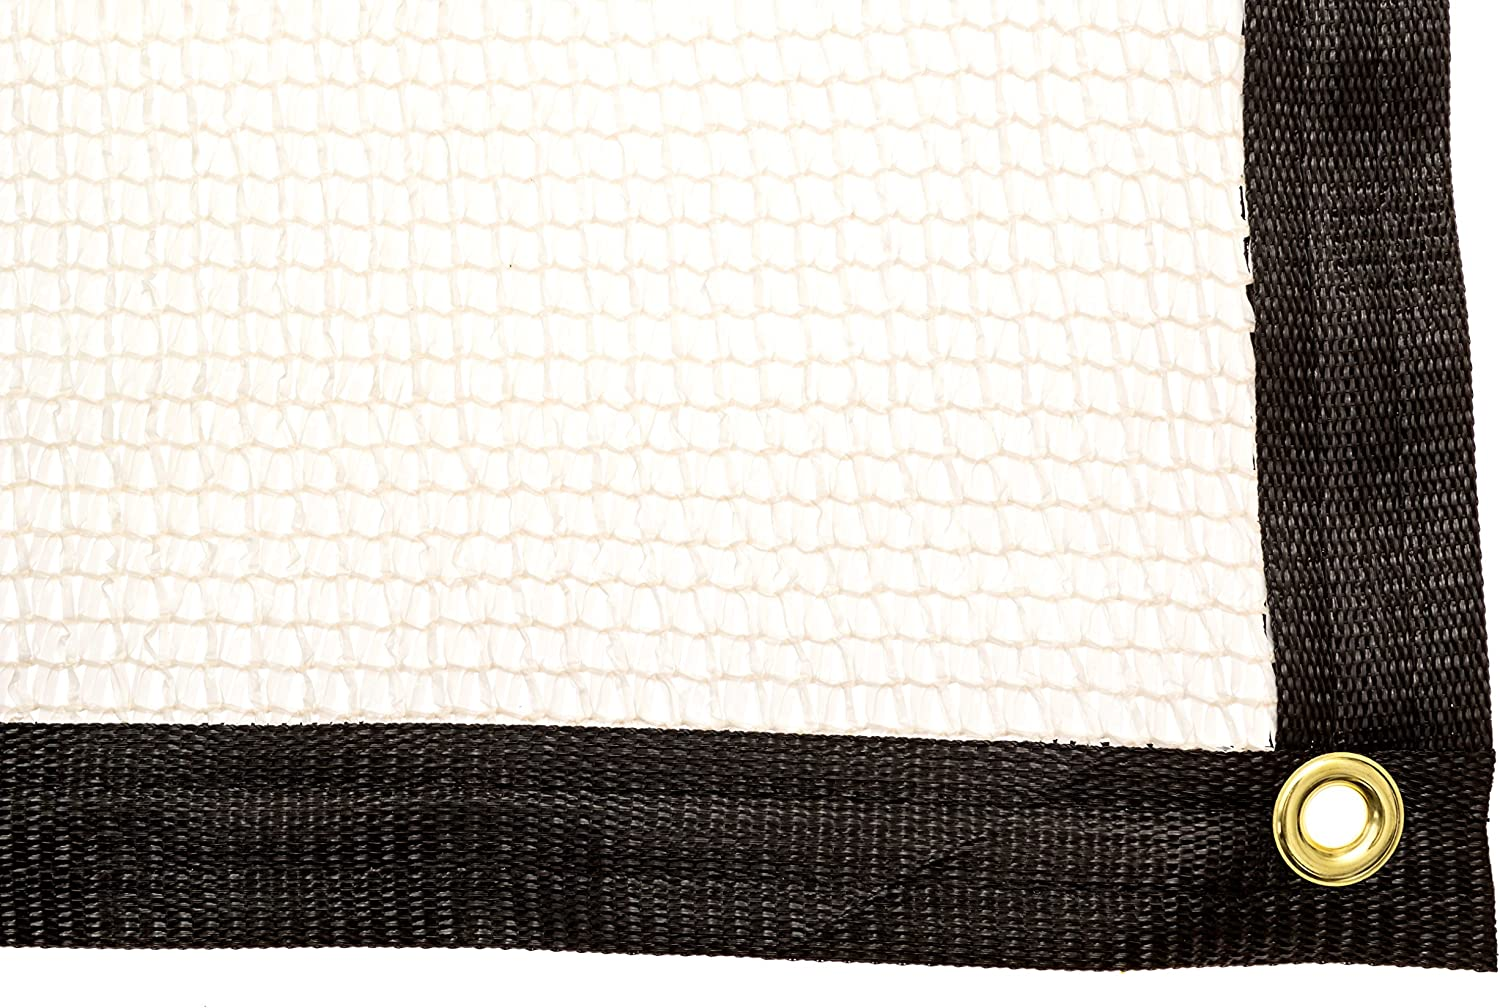 Be Cool Solutions 50% White Outdoor Sun Shade Canopy: UV Protection Shade Cloth| Lightweight, Easy Setup Mesh Canopy Cover with Grommets| Sturdy, Durable Shade Fabric for Garden, Patio & Porch 12'x20'